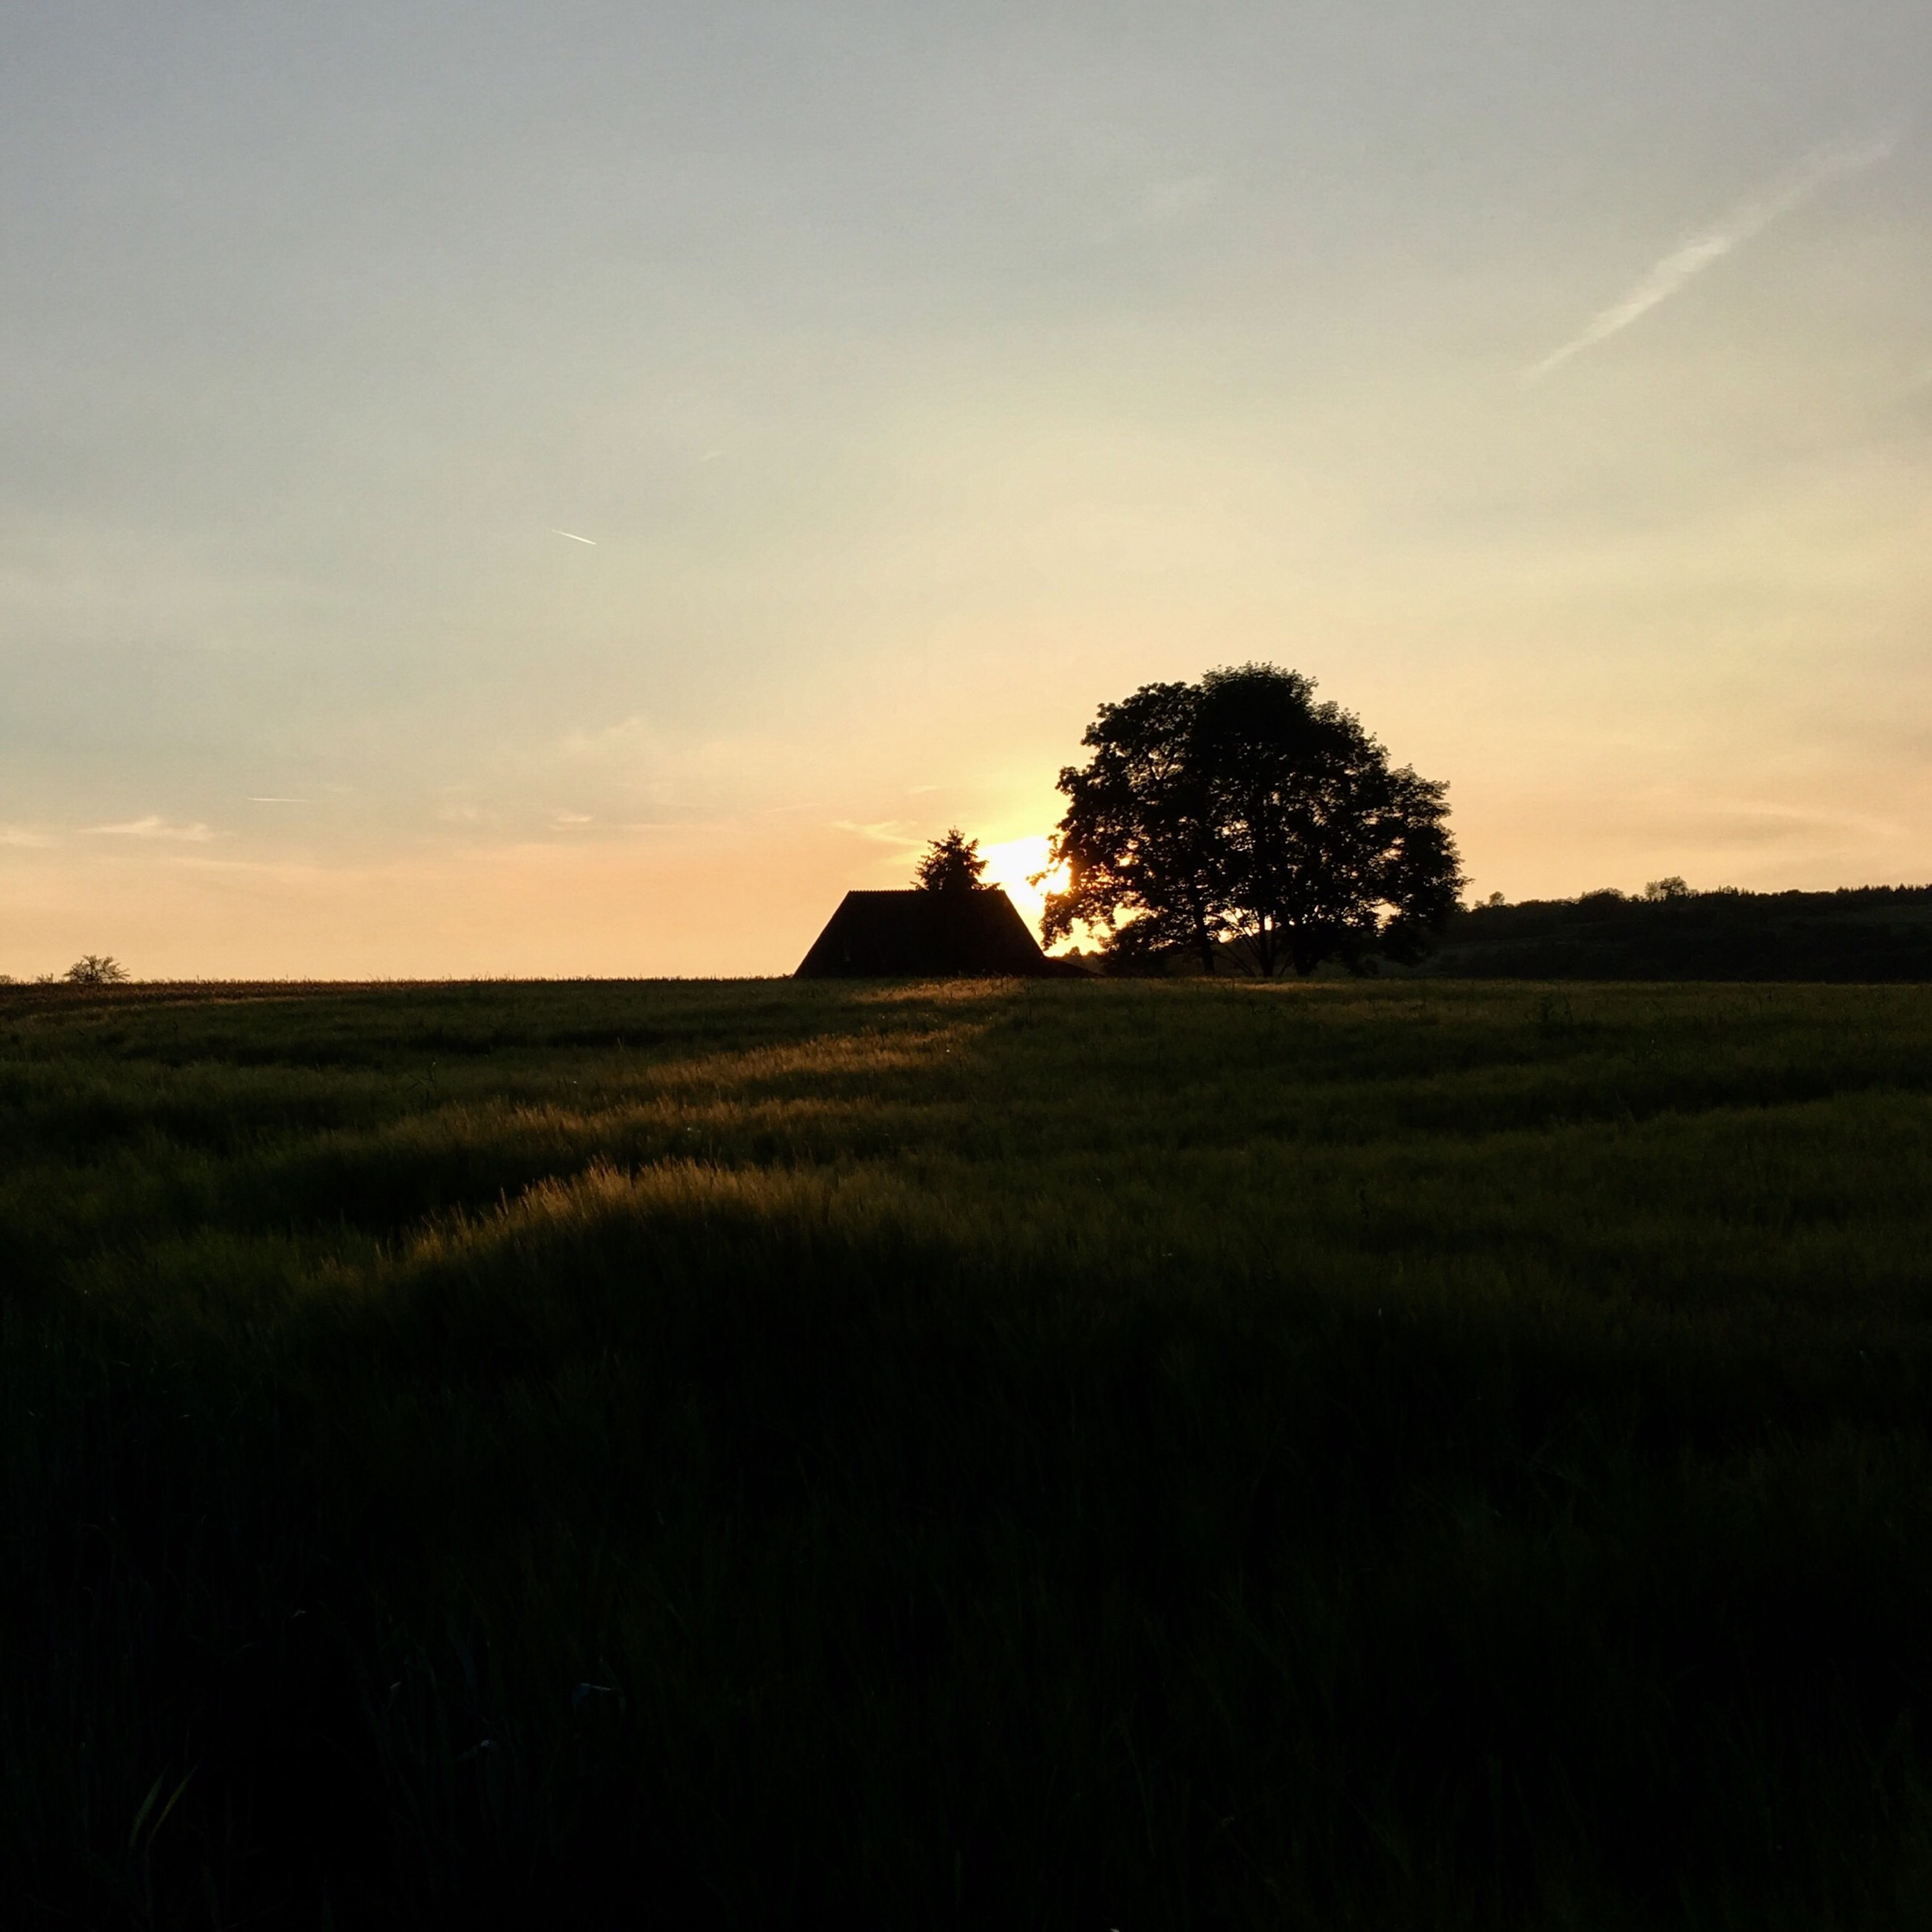 sunset, nature, beauty in nature, field, tree, growth, agriculture, landscape, rural scene, silhouette, sky, scenics, outdoors, no people, day